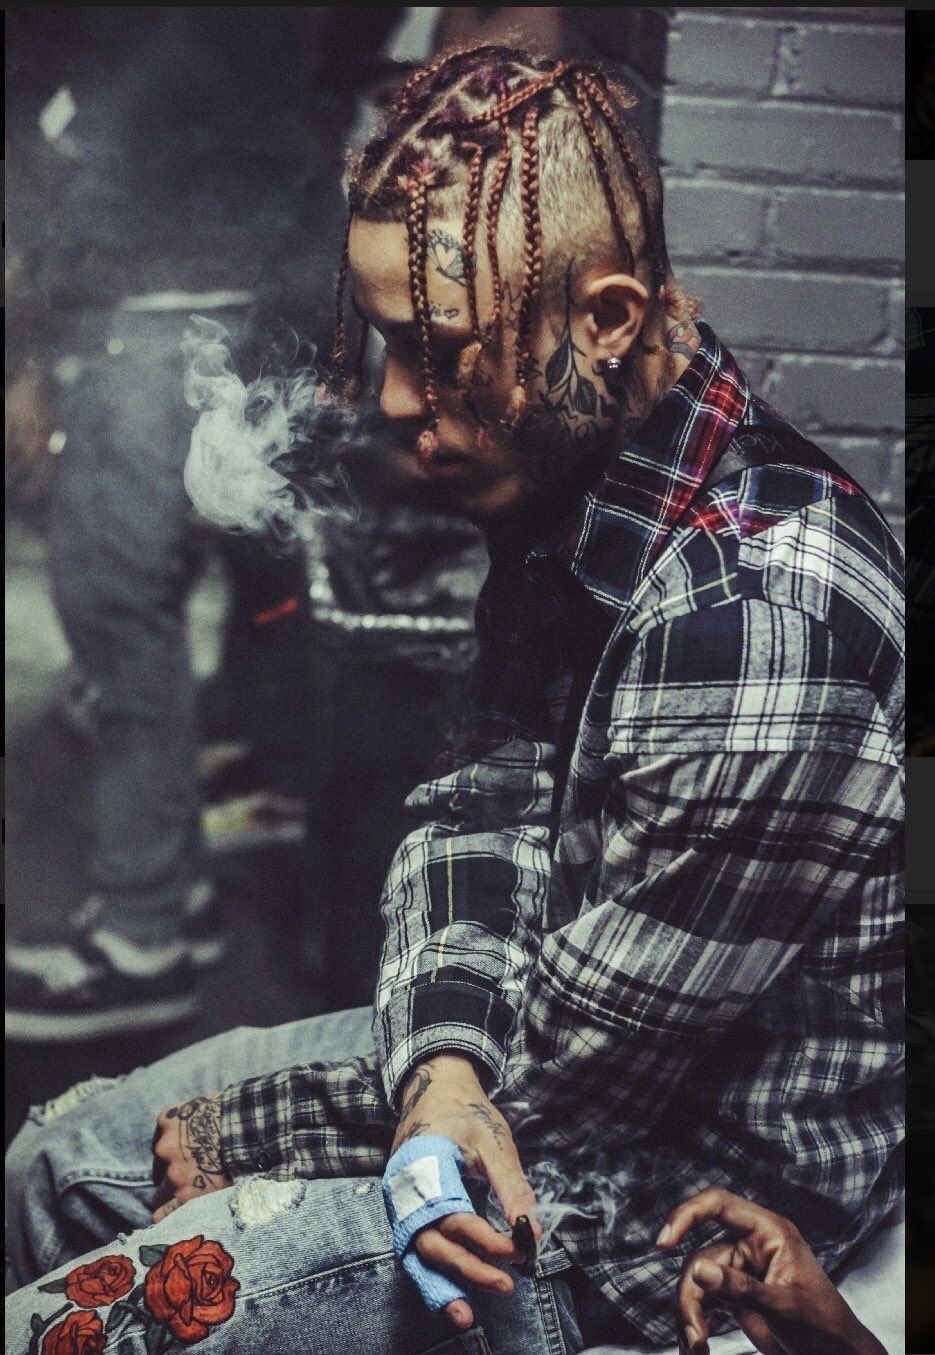 ayoonei ♡ ♡ ♡ Lil skies, Rapper, Sky art